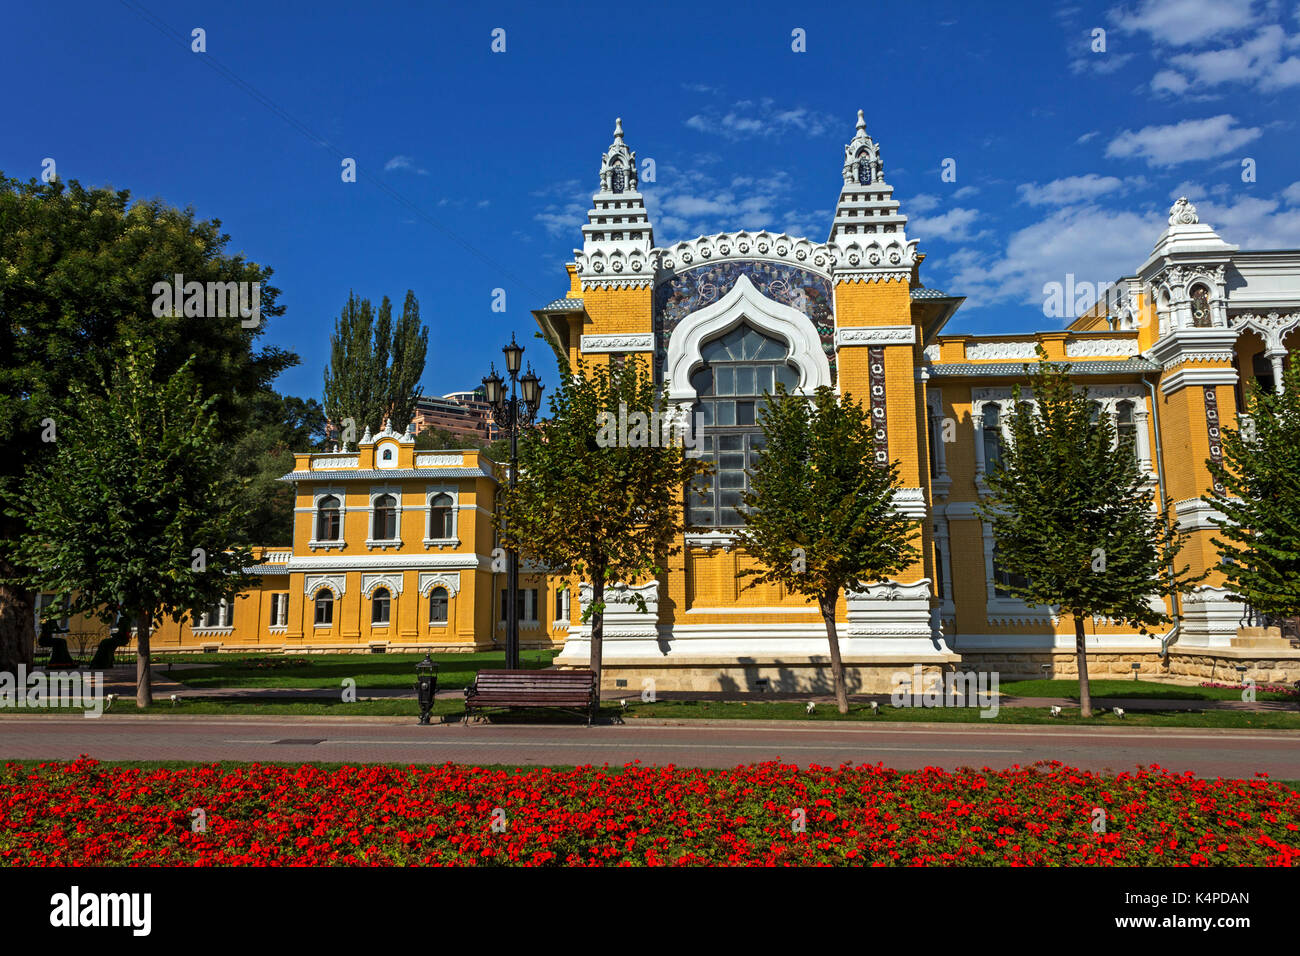 KISLOVODSK, RUSSIA - SEPTEMBER 06,2017:The ancient building of the Main Narzan baths,built by the engineer and architect - Stock Image